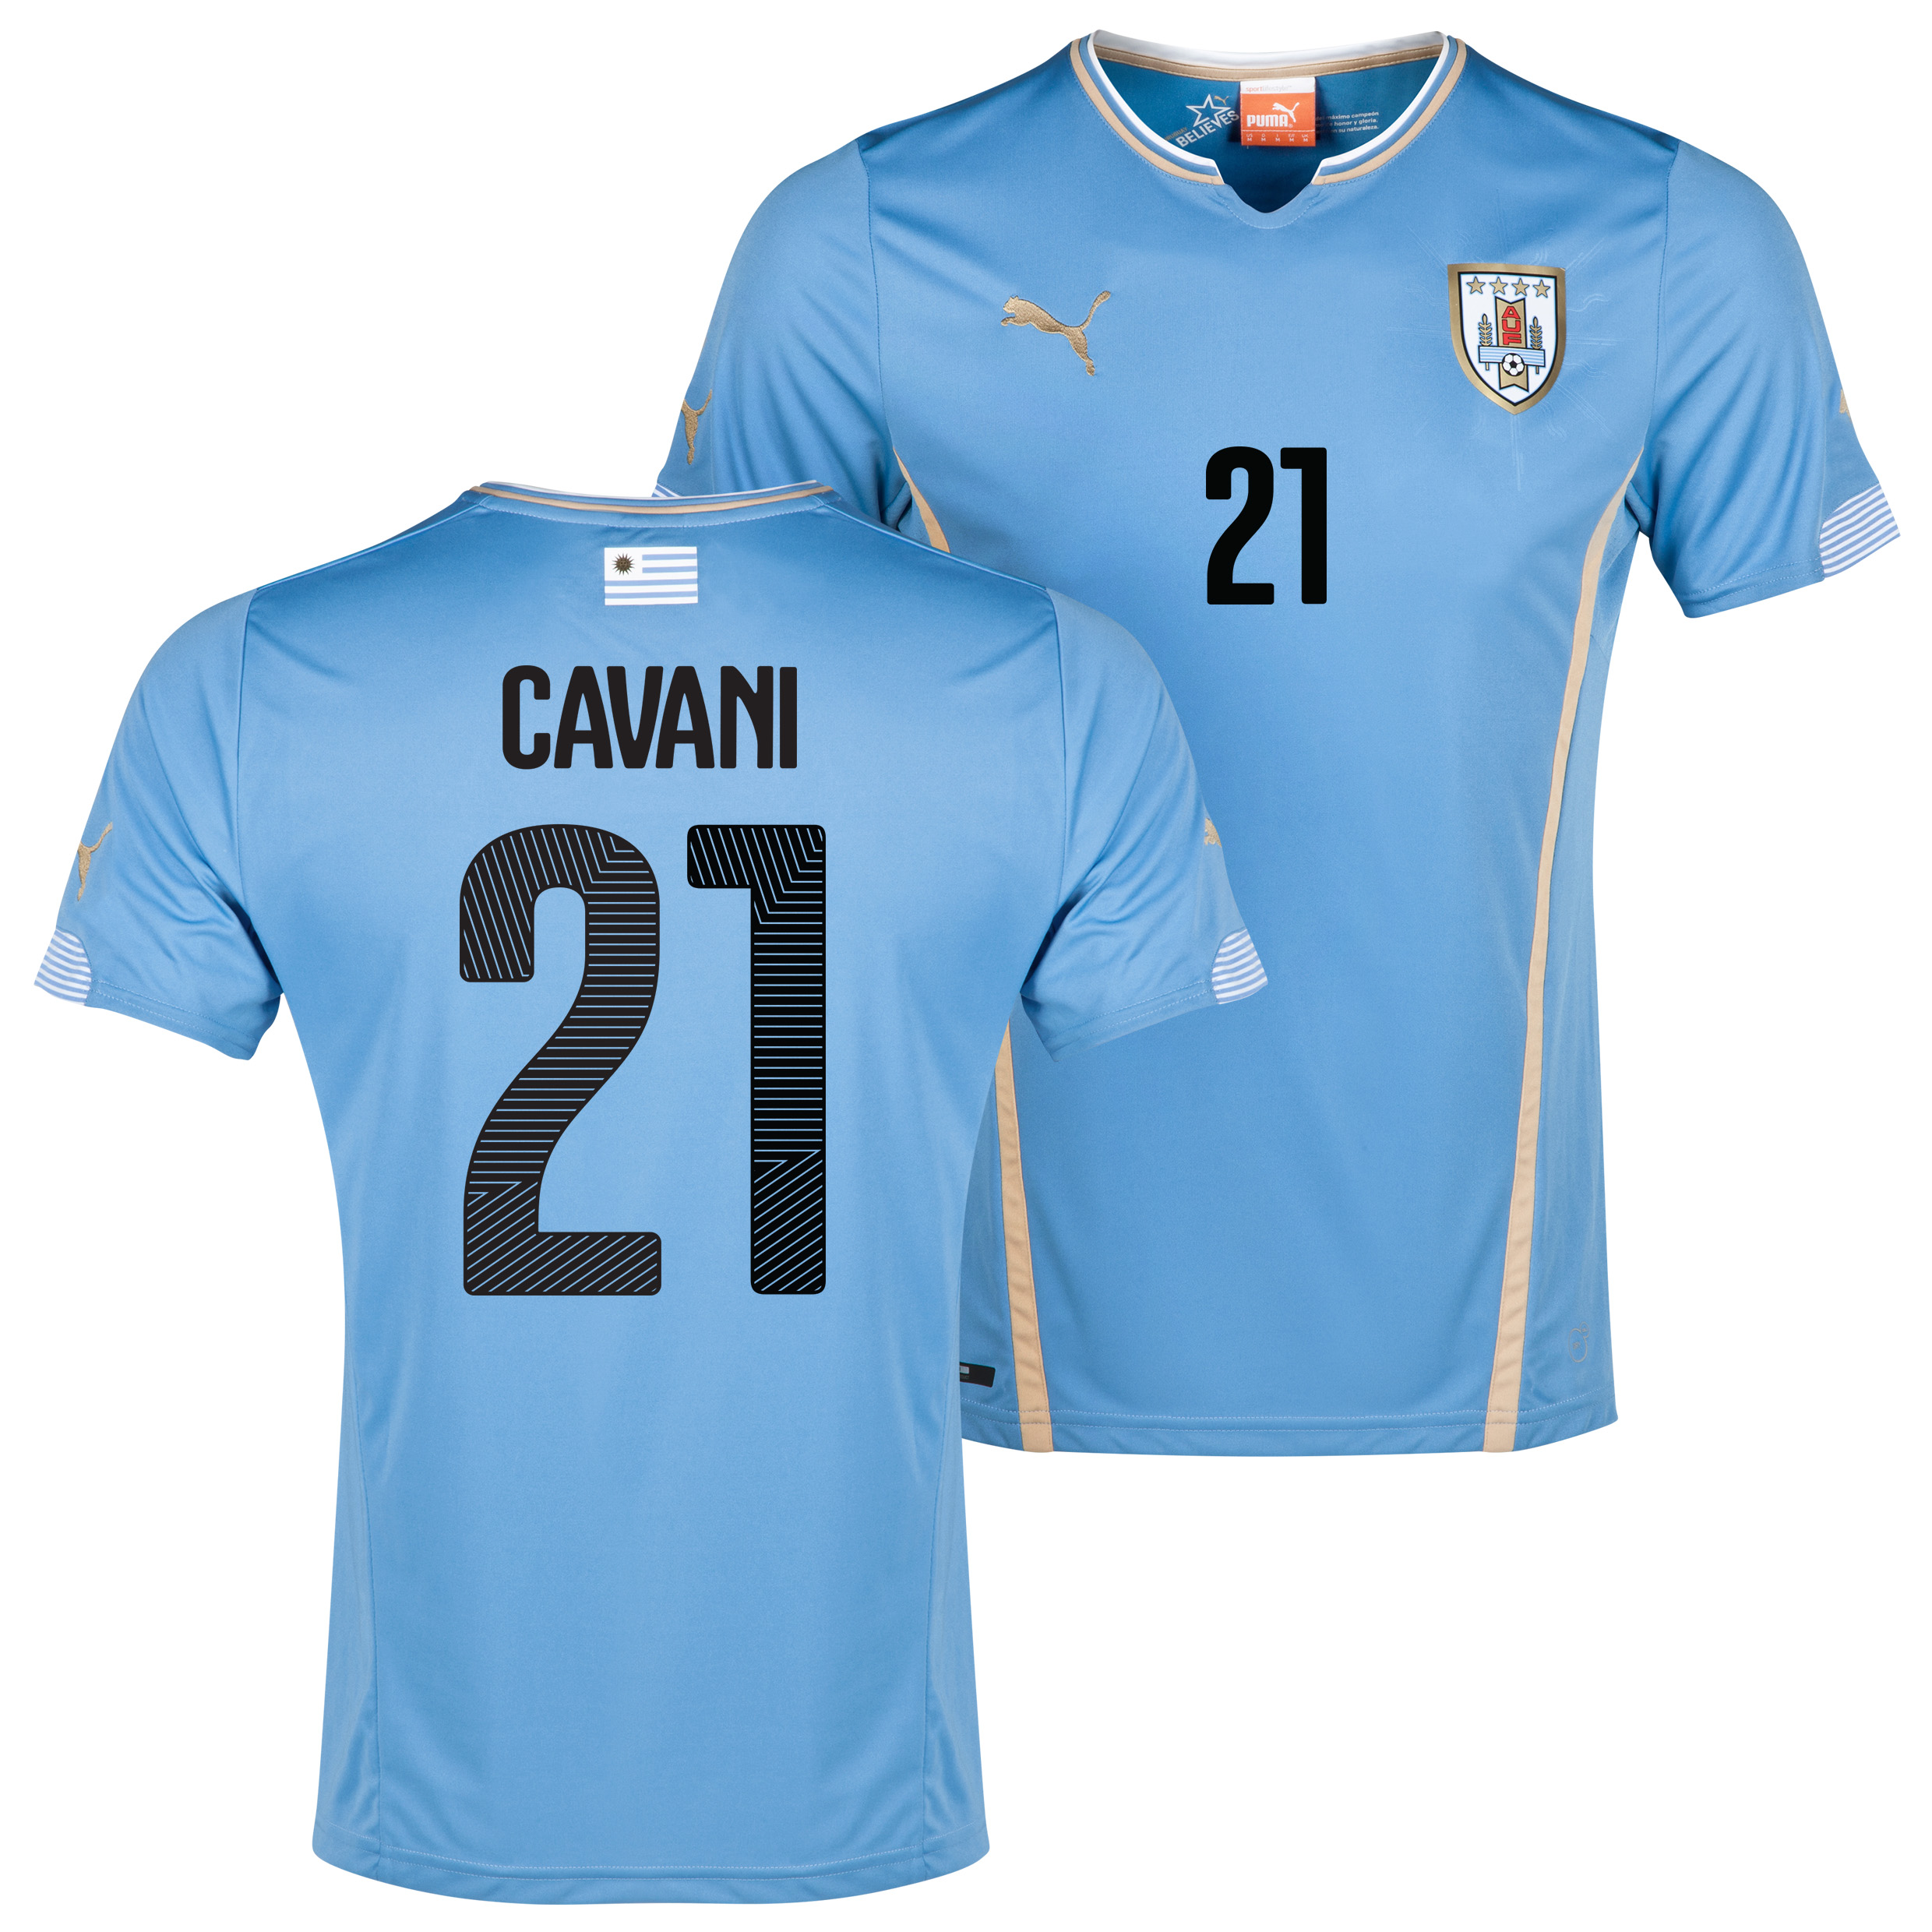 Uruguay Home Shirt 2013/14 with Cavani 21 printing